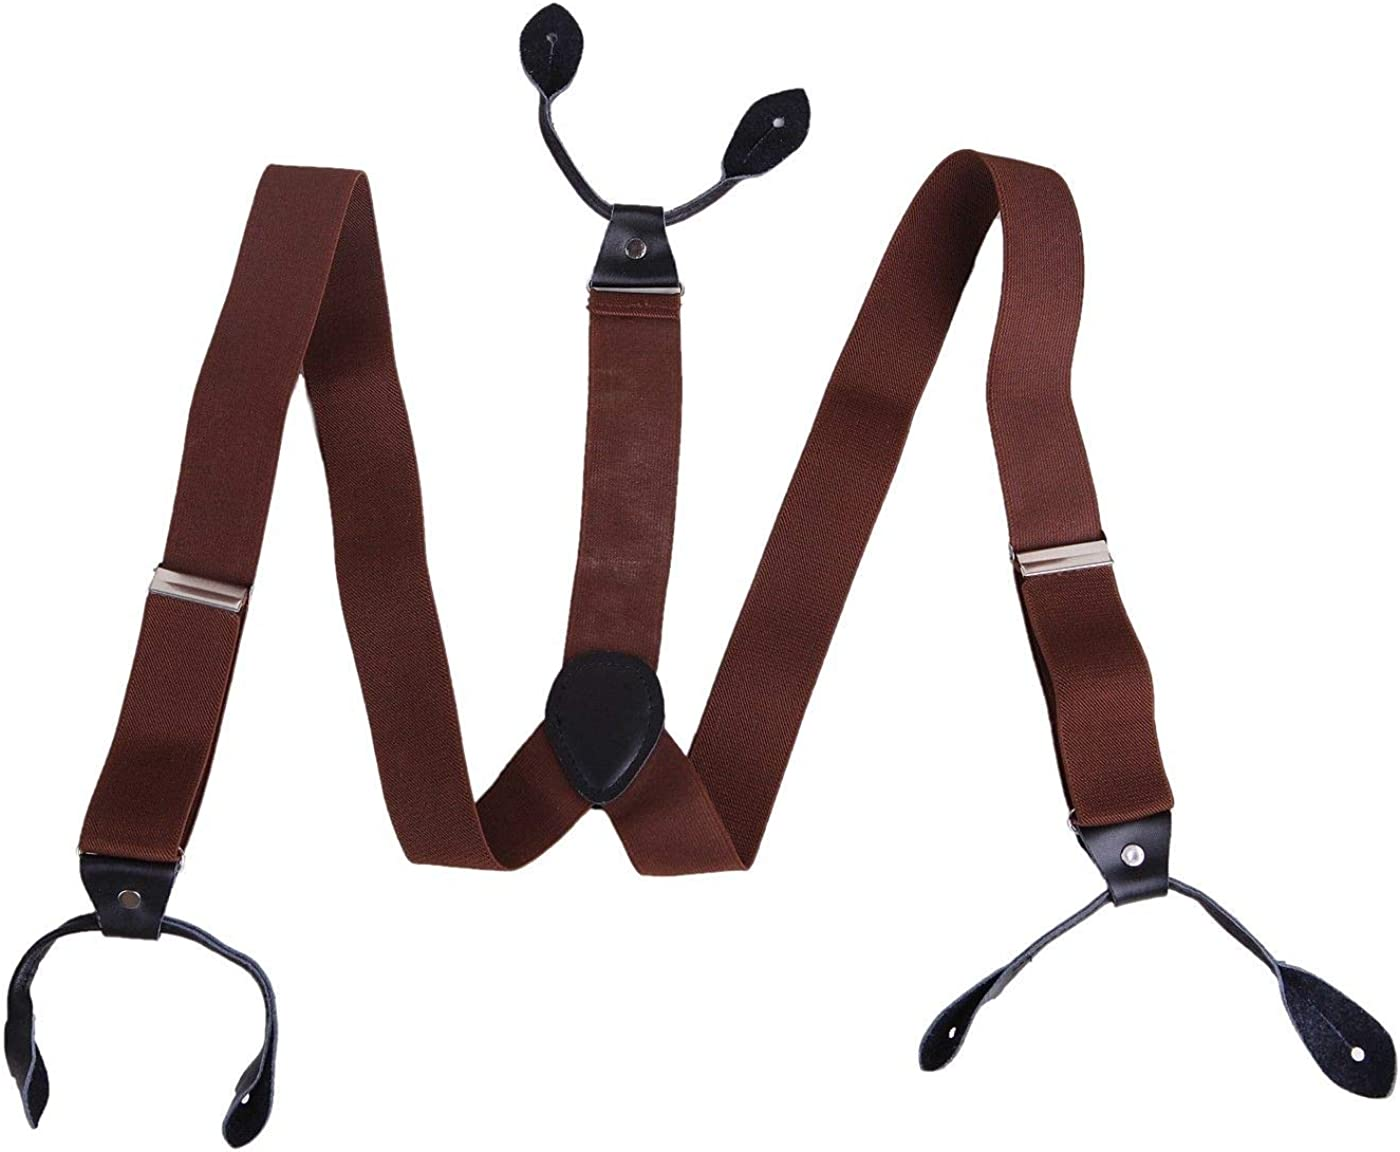 1Pc Brown Mens Button Hole Suspenders Classic Solid Tuxedo Formal Y Adjustable Braces